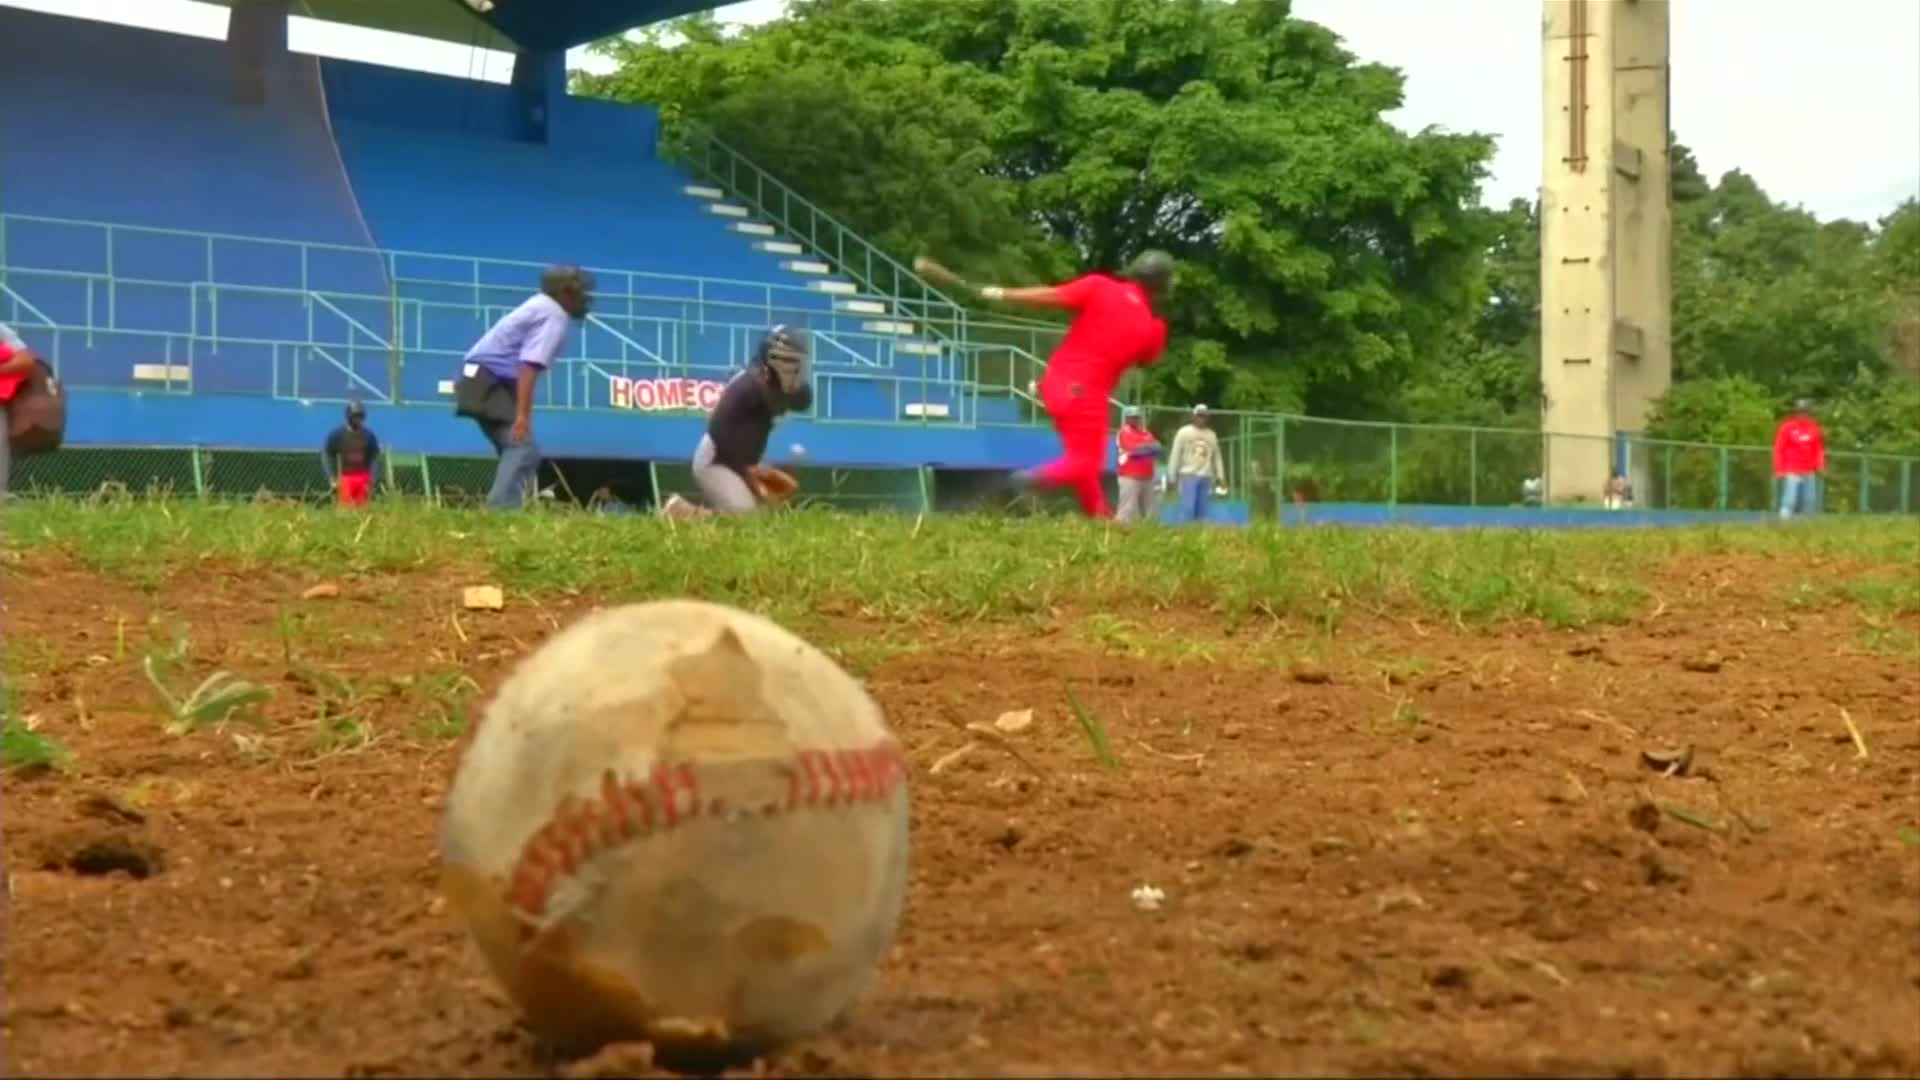 Sports Top Stories - MLB, Cuba Agree Players Don't Have To Defect To Sign With U.S. Teams